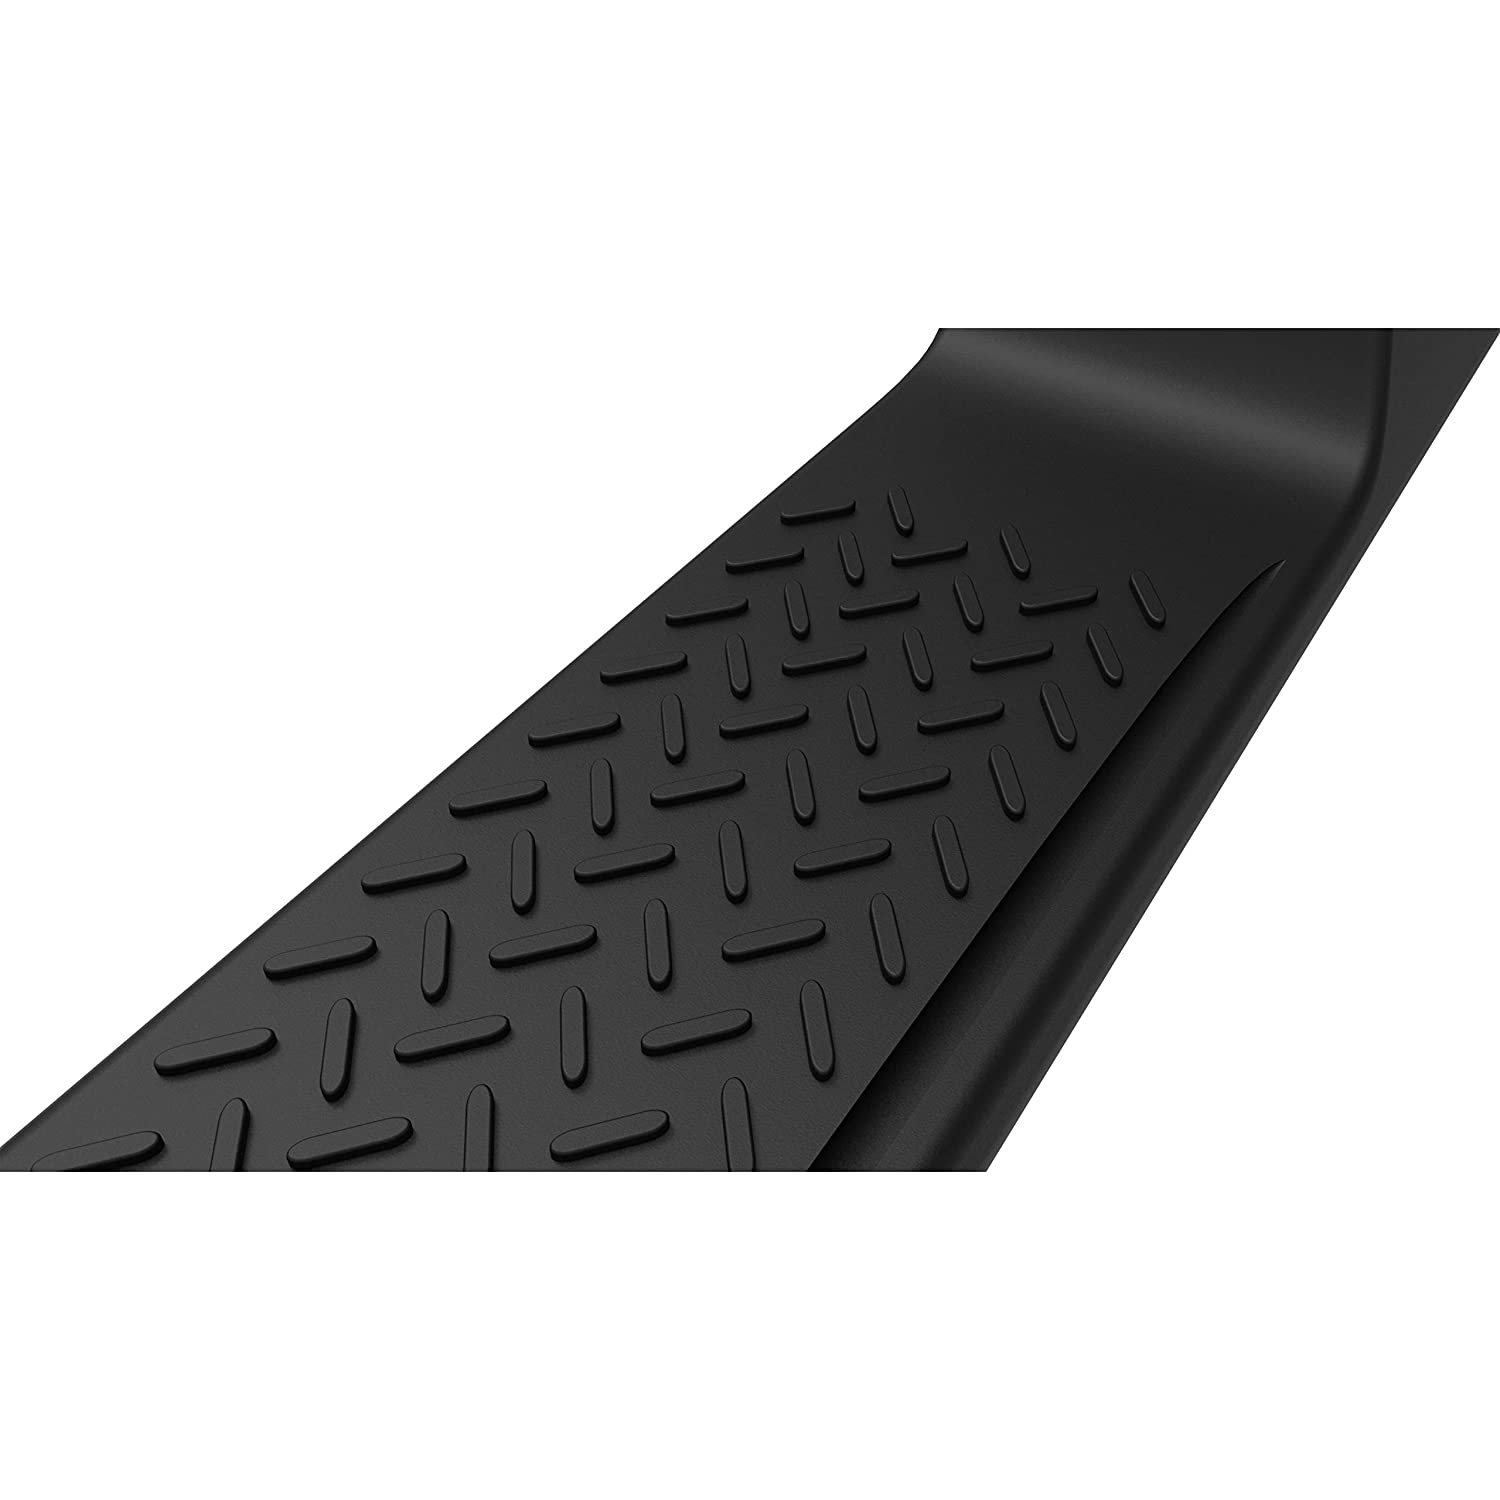 A/&K ABS Running Board for 07-17 Jeep Wrangler JK 4 Doors Side Step Pad OE Factory Style Nerf Bar Accessories for 2007 2008 2009 2000 2010 2011 2012 2013 2014 2015 2016 2017 Jeep JK Sahara Rubicon